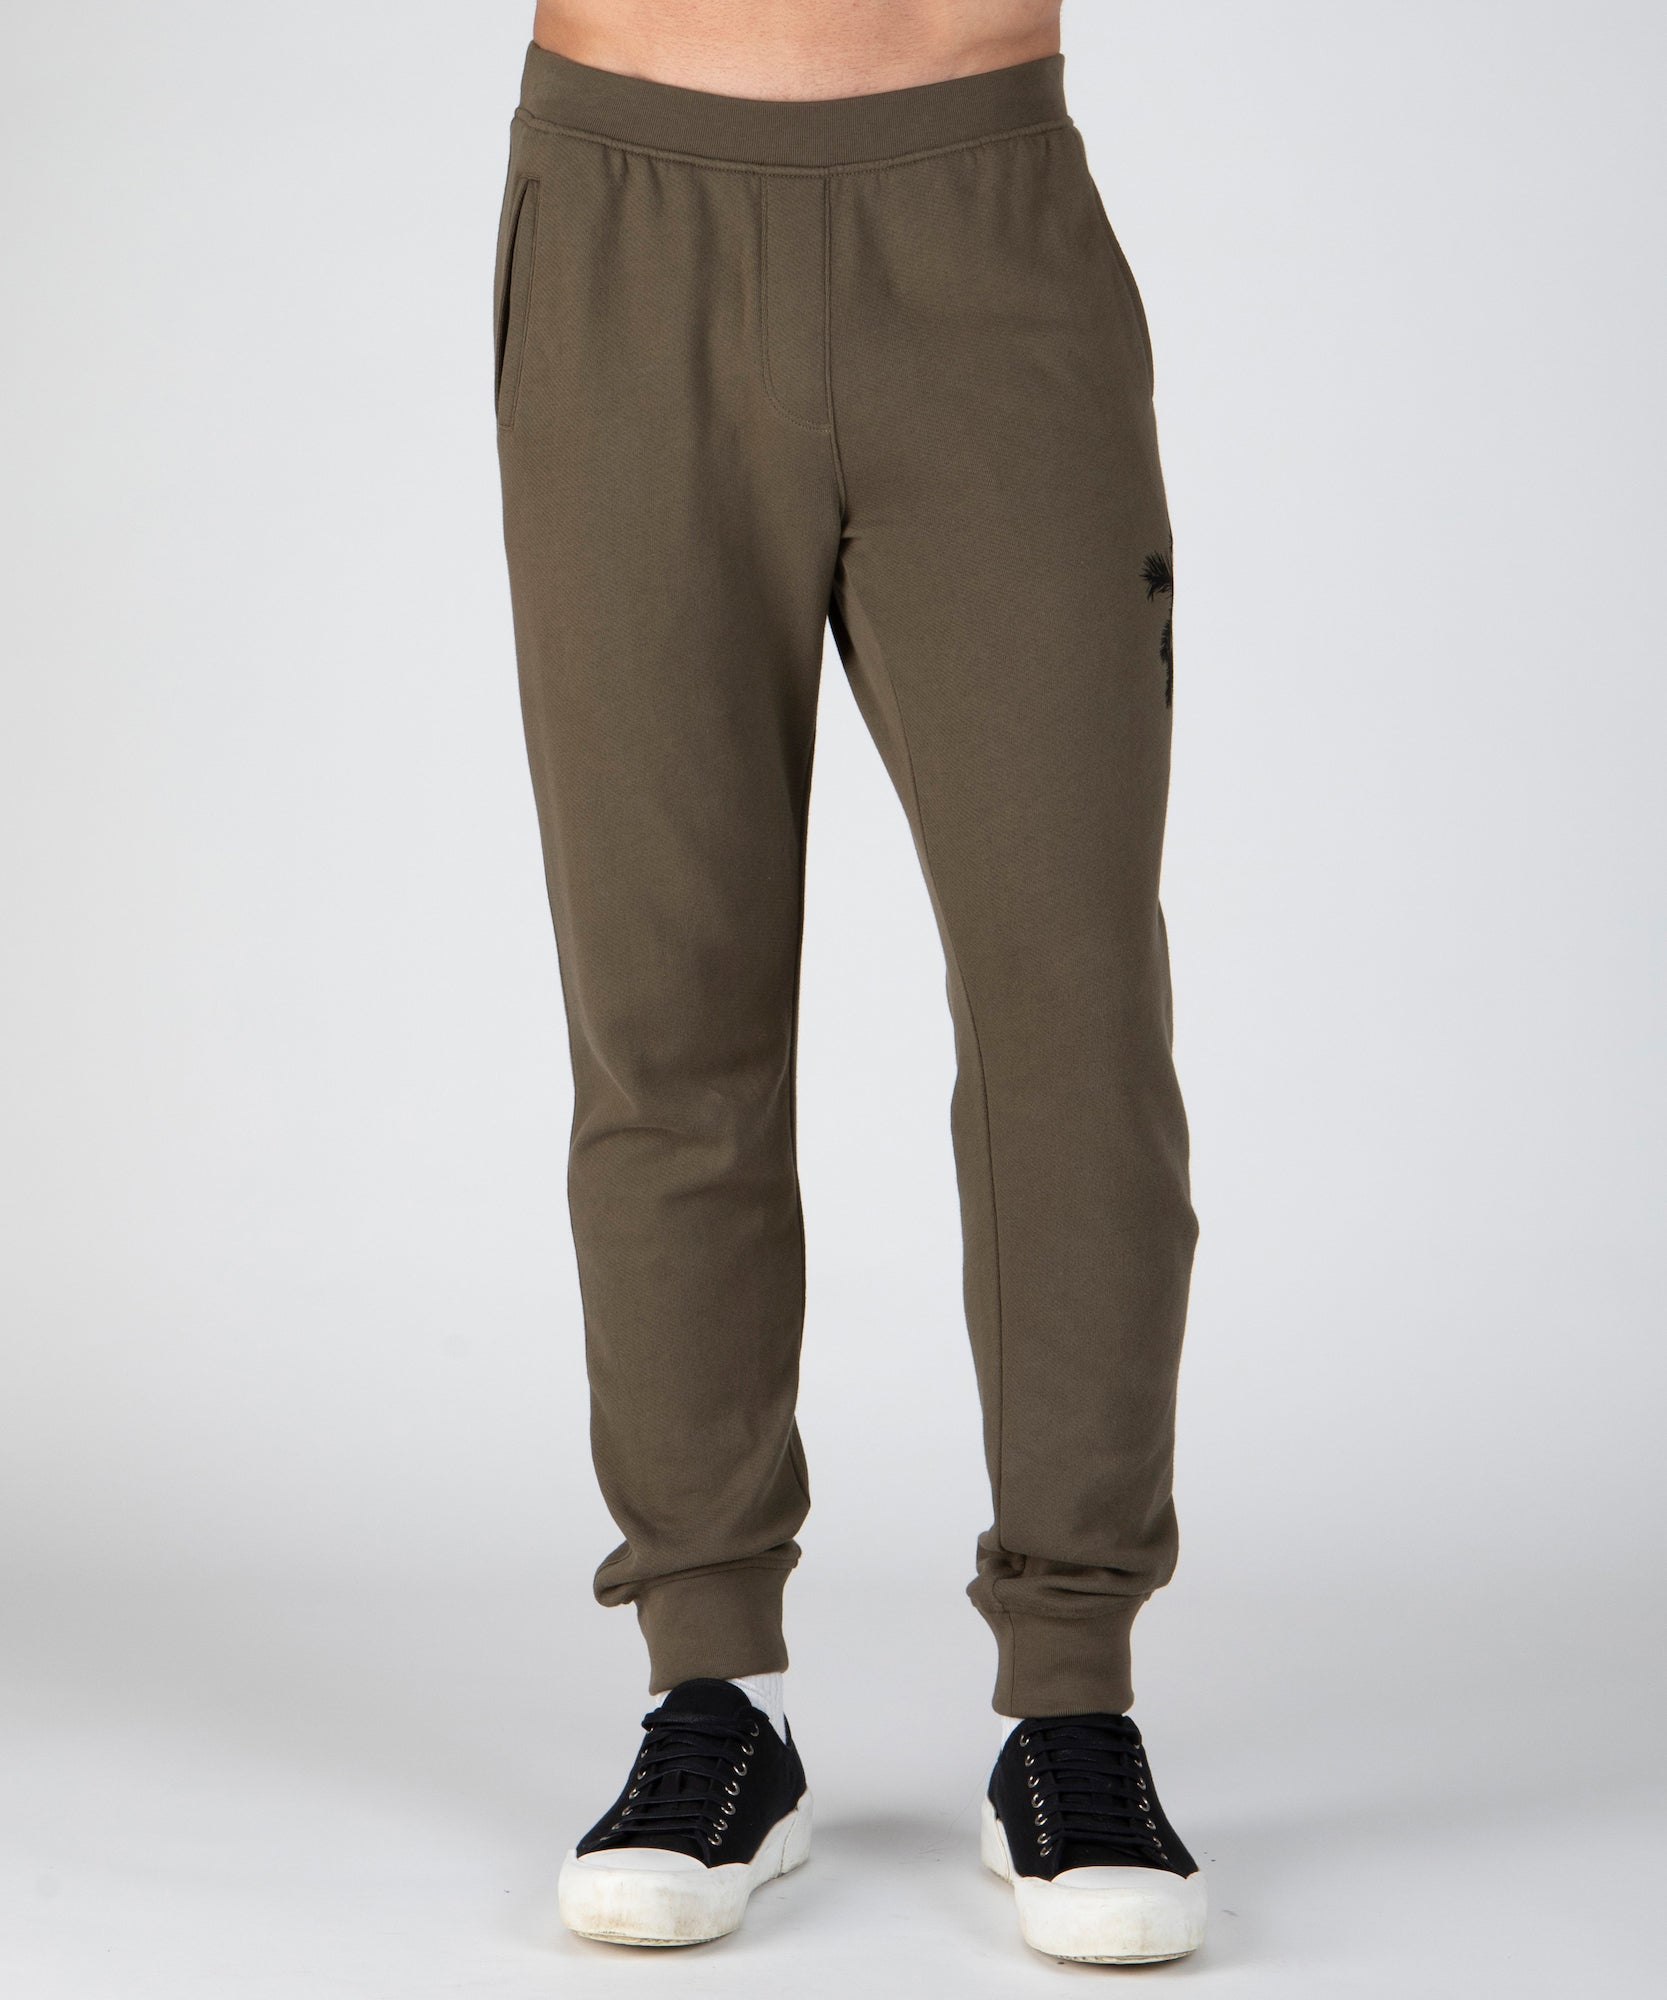 Army French Terry Palm Print Sweatpants - Men's Luxe Loungewear by ATM Anthony Thomas Melillo